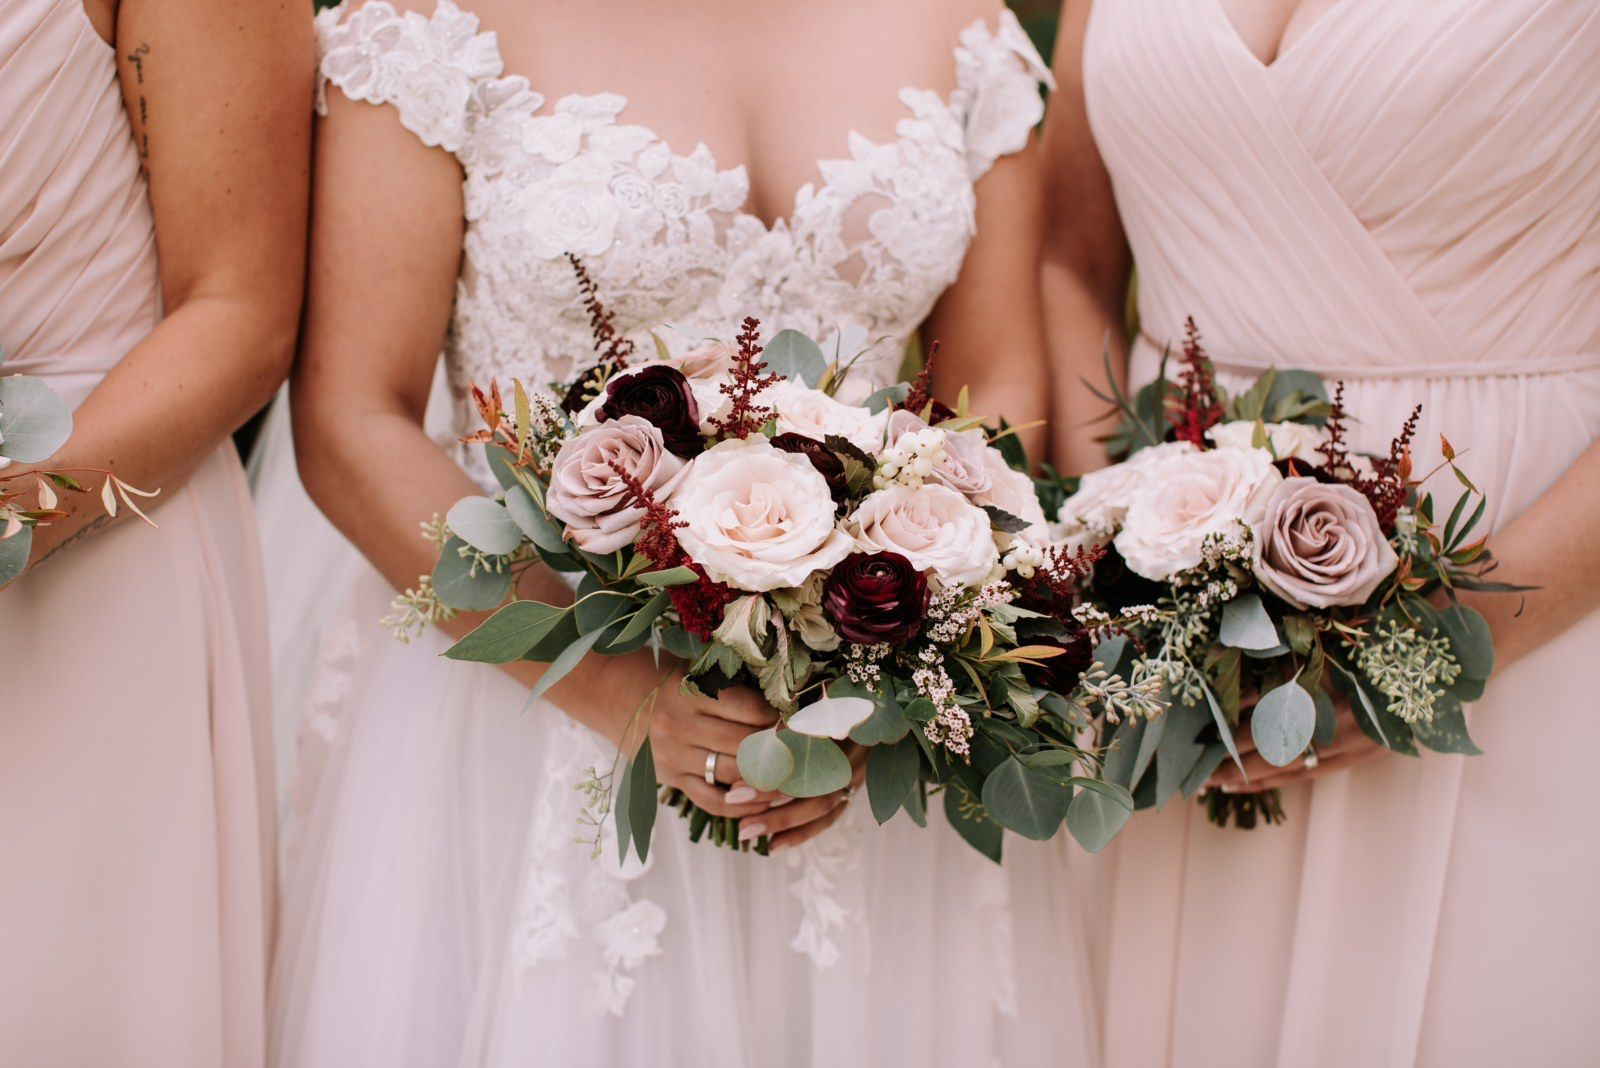 Dusty rose and burgundy bouquets #astilbebouquet Perfect bouquets for a fall wedding in shades of dusty pink, dusty lavender and burgundy. These bouquets were designed with astilbe, amnesia roses, Quicksand roses and burgundy ranunculus. Photo: Red Bloom Photography #fallbouquets #dustypinkflowers #burgundyflowers #fallweddingflowers #calgaryweddings #astilbebouquet